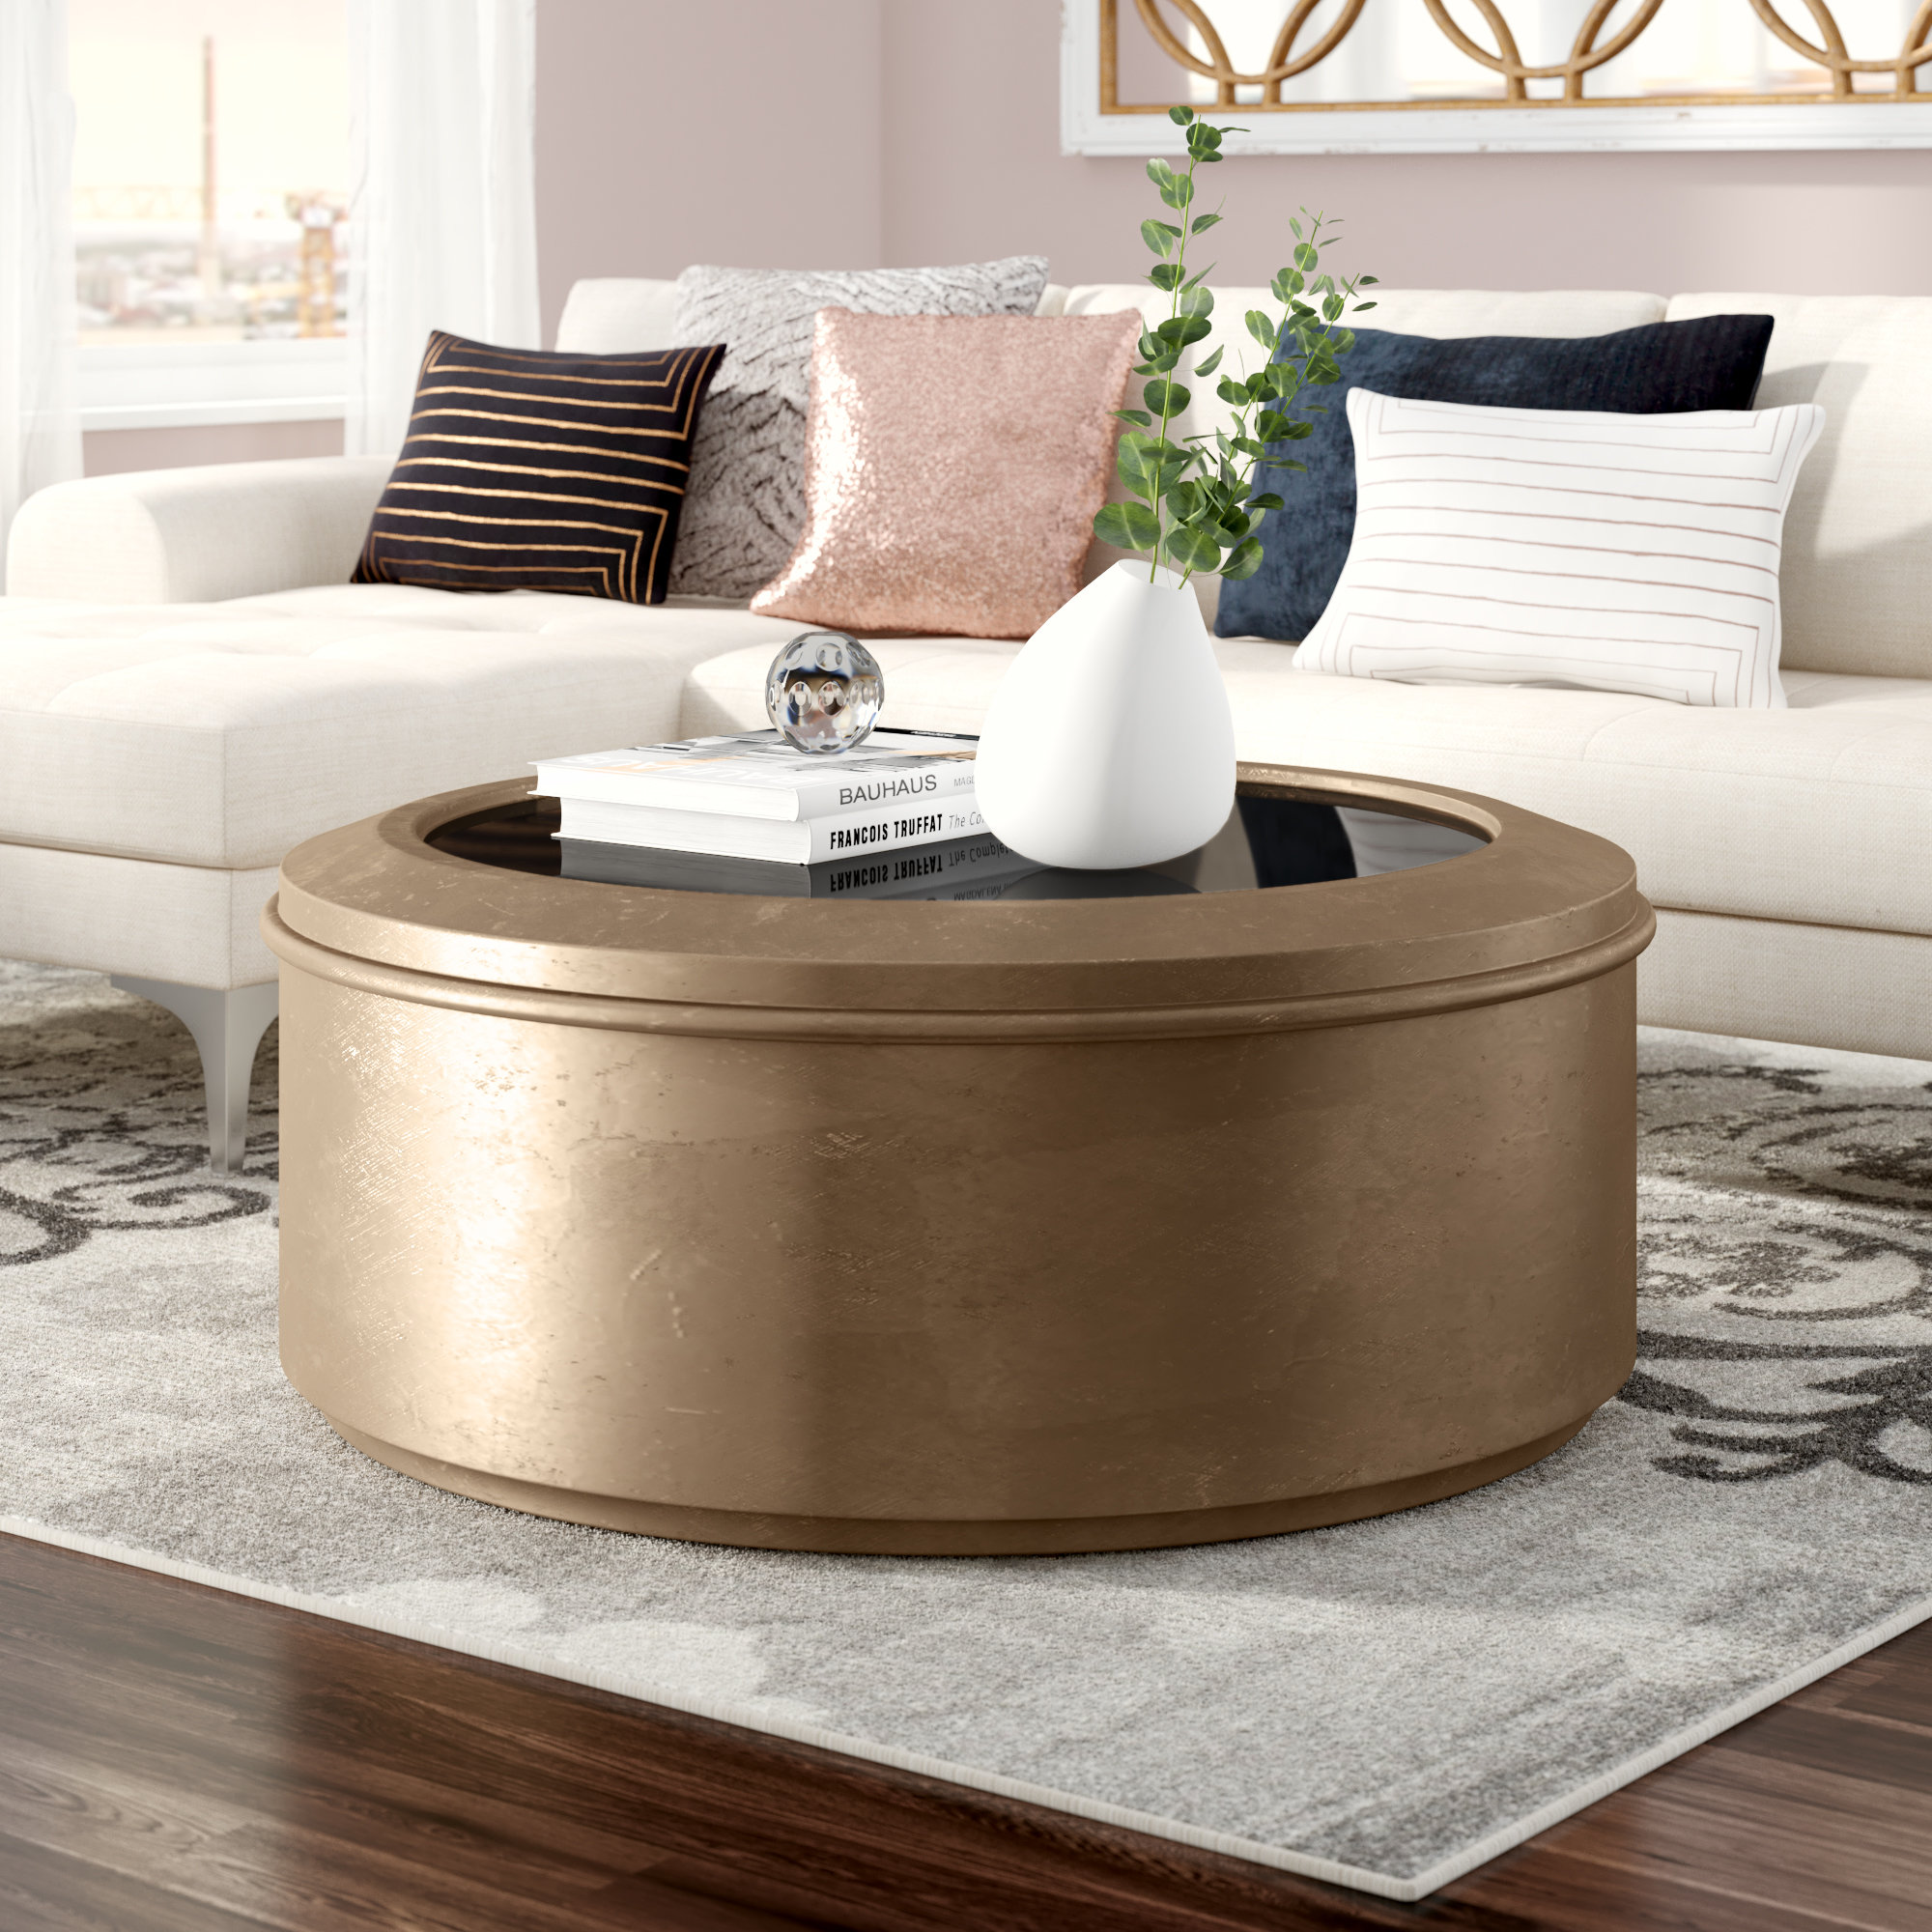 bronze drum table rodger coffee industrial chic accent living room console cabinets metal top side chestnut furniture triangle ikea vintage asian lamps look tables frame bedside